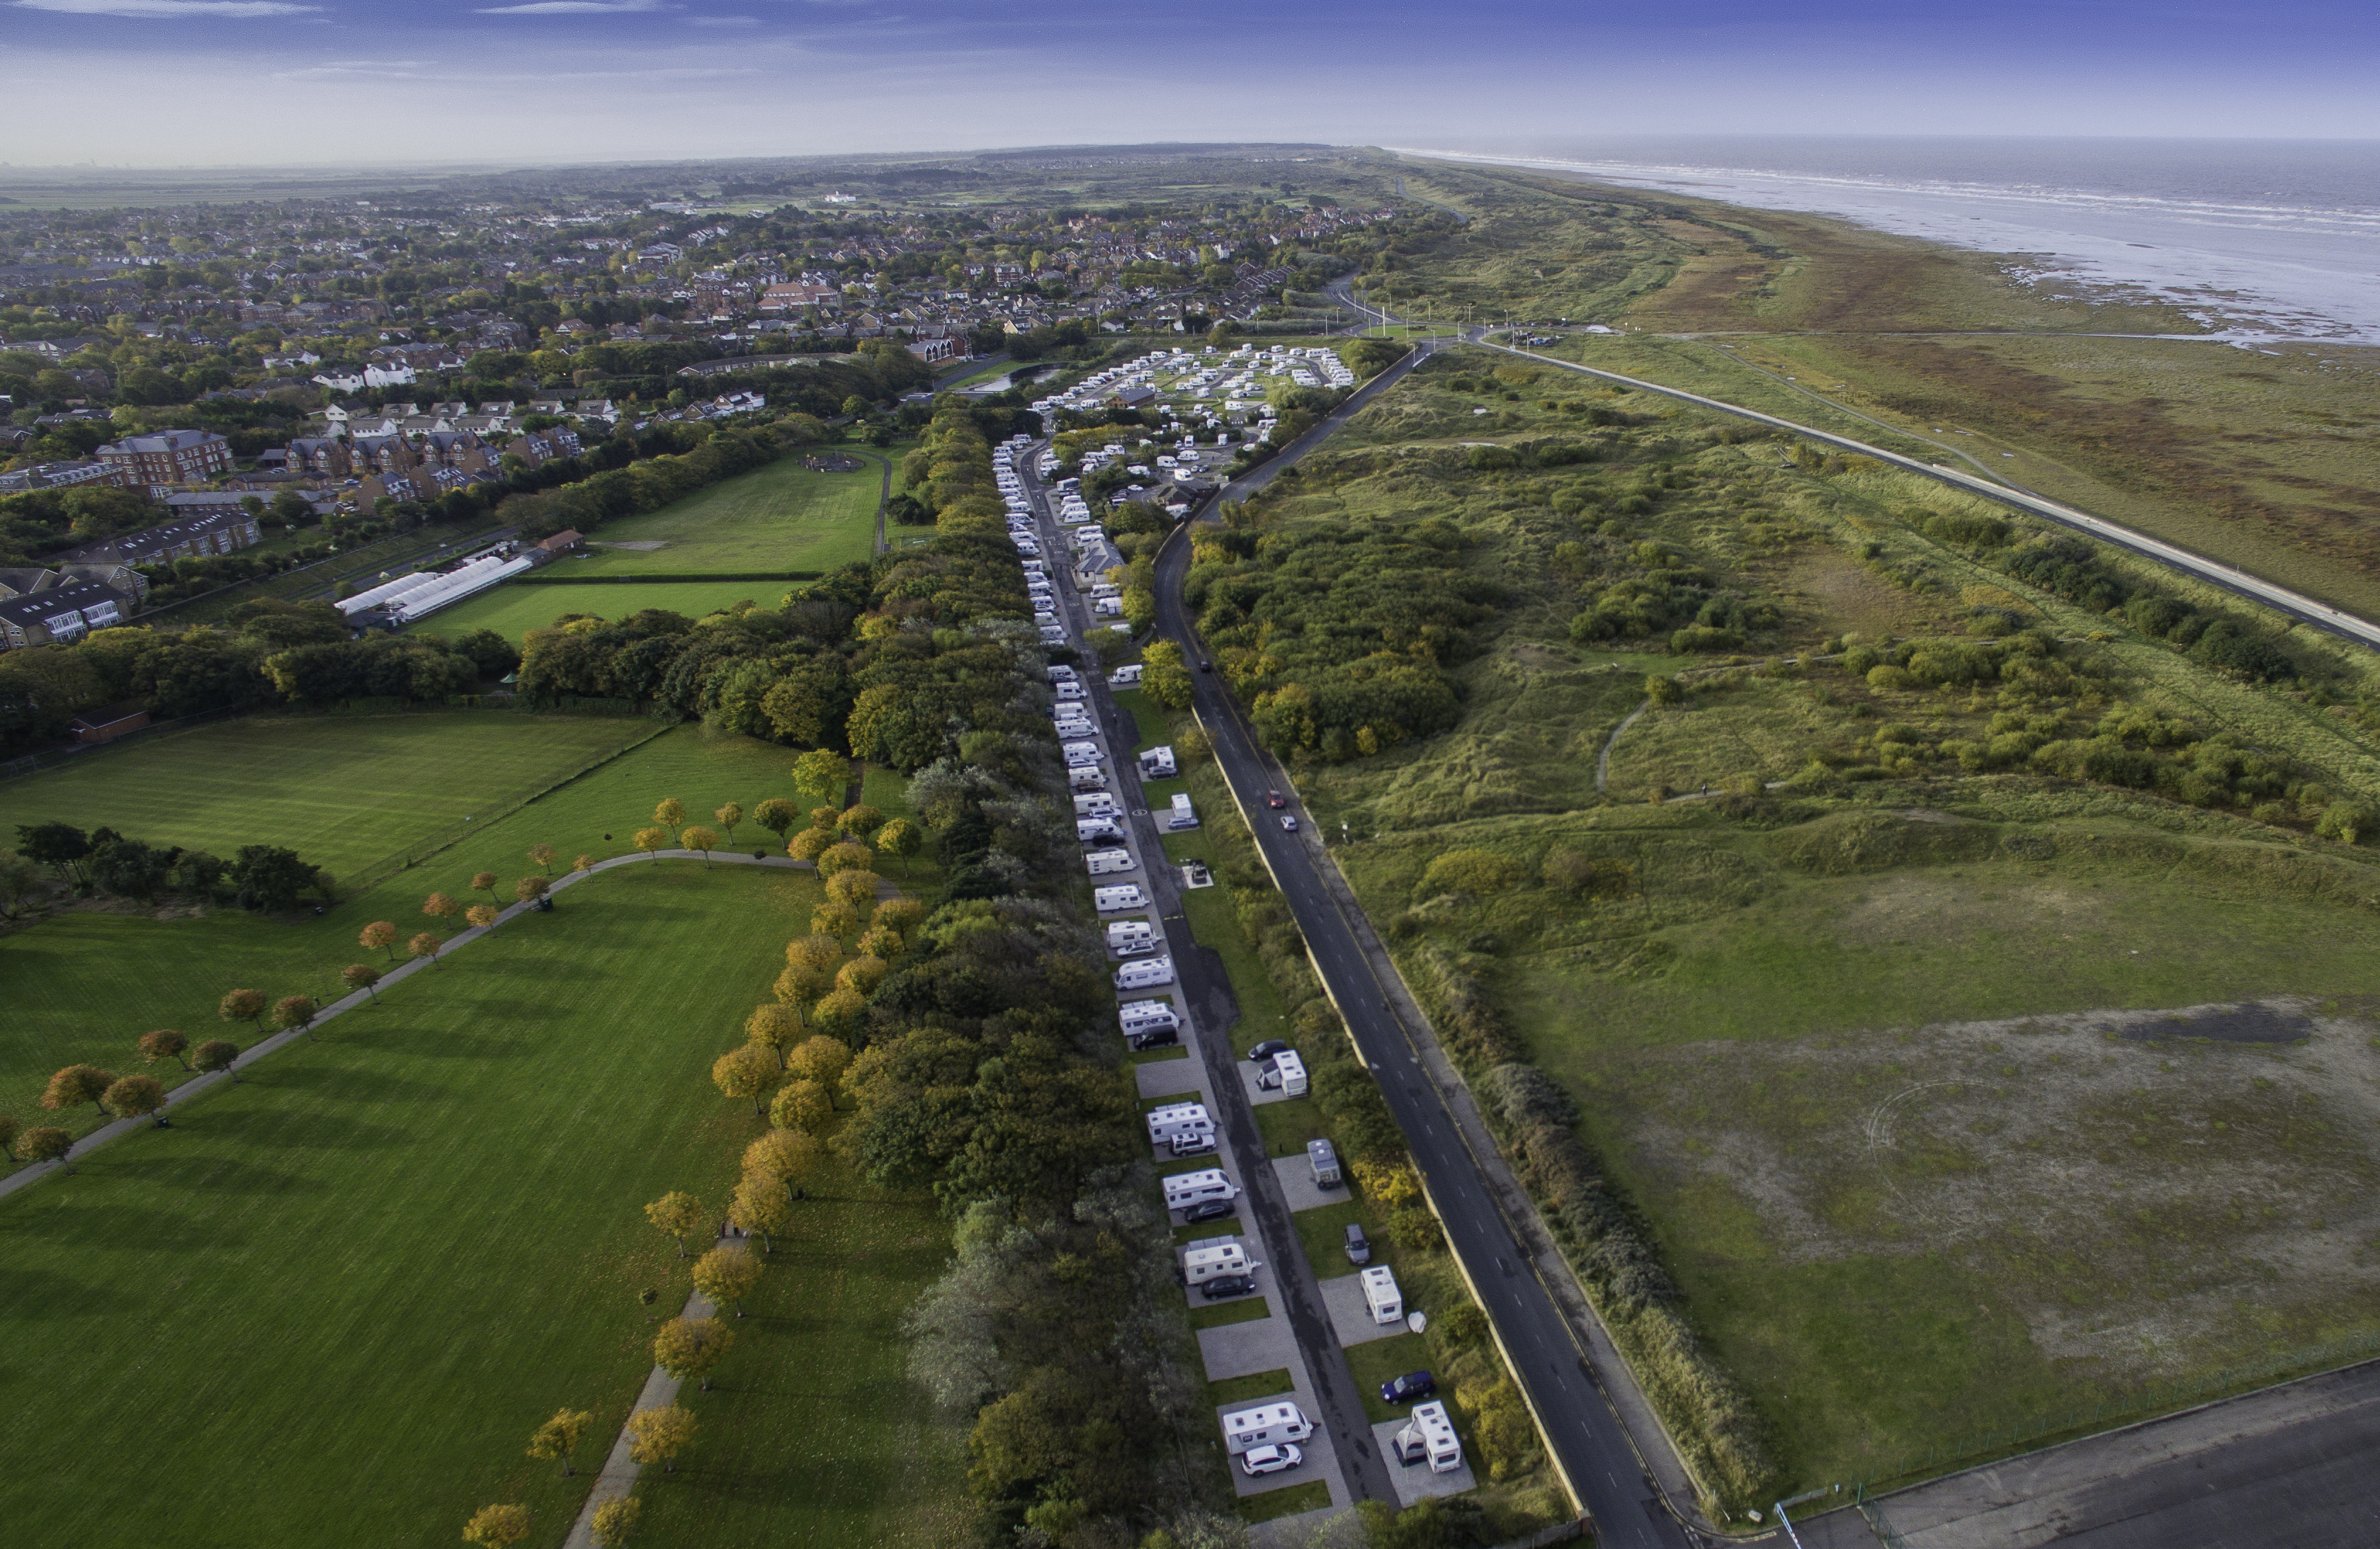 Southport Caravan Club Site